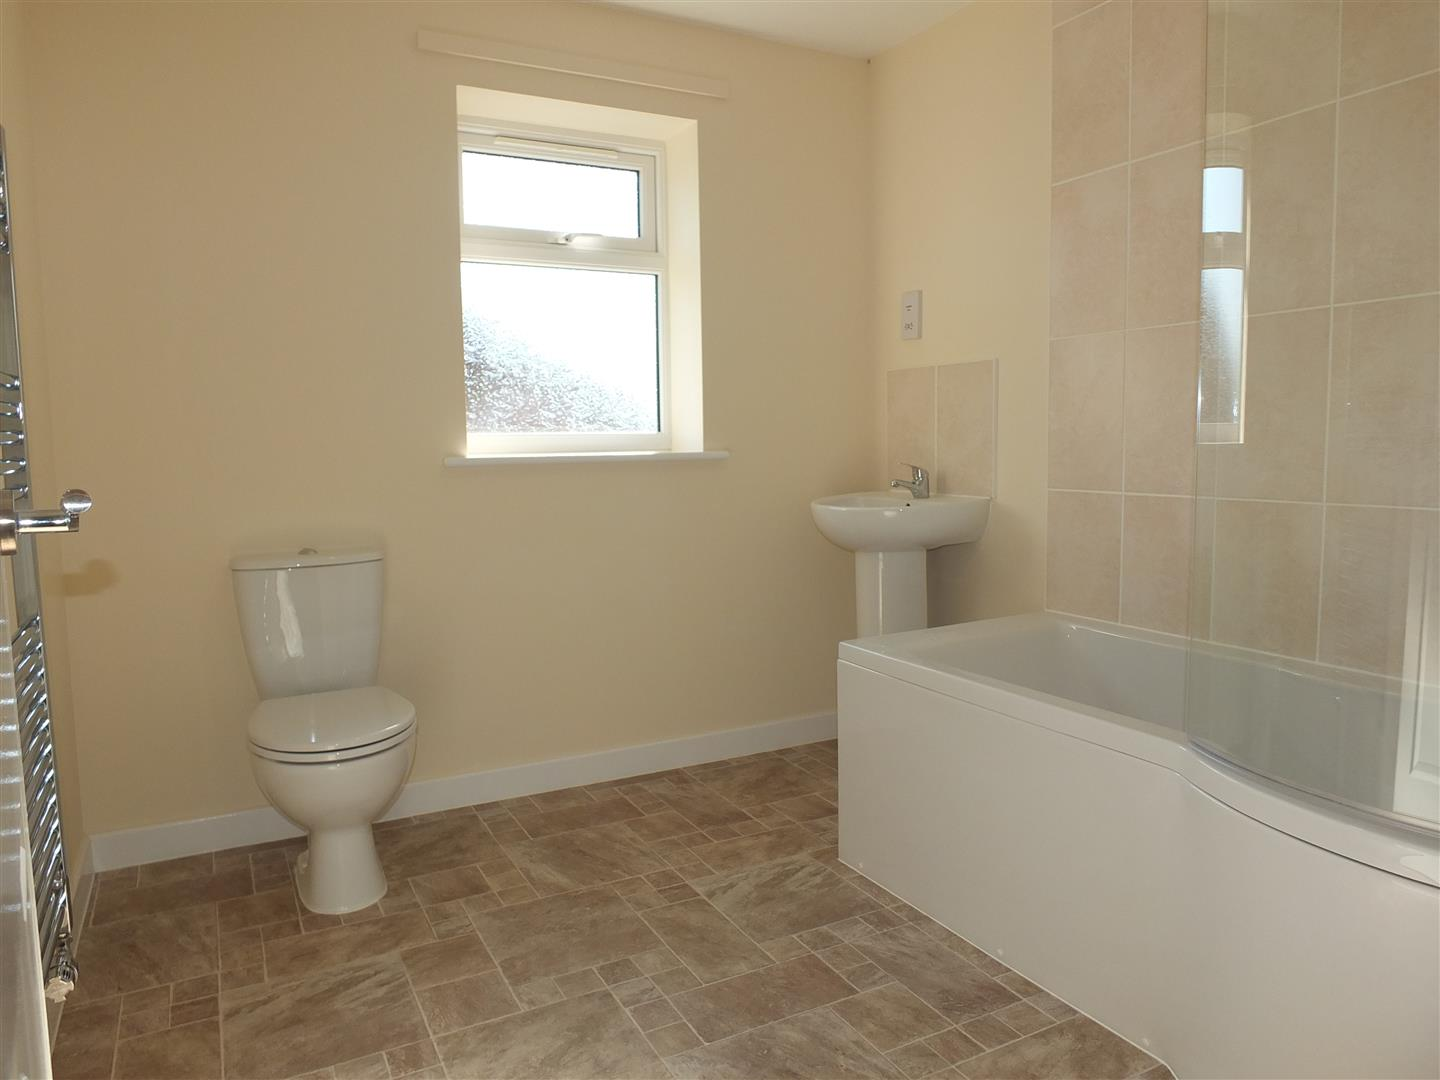 2 bed house to rent in Long Sutton Spalding, PE12 9LE  - Property Image 9